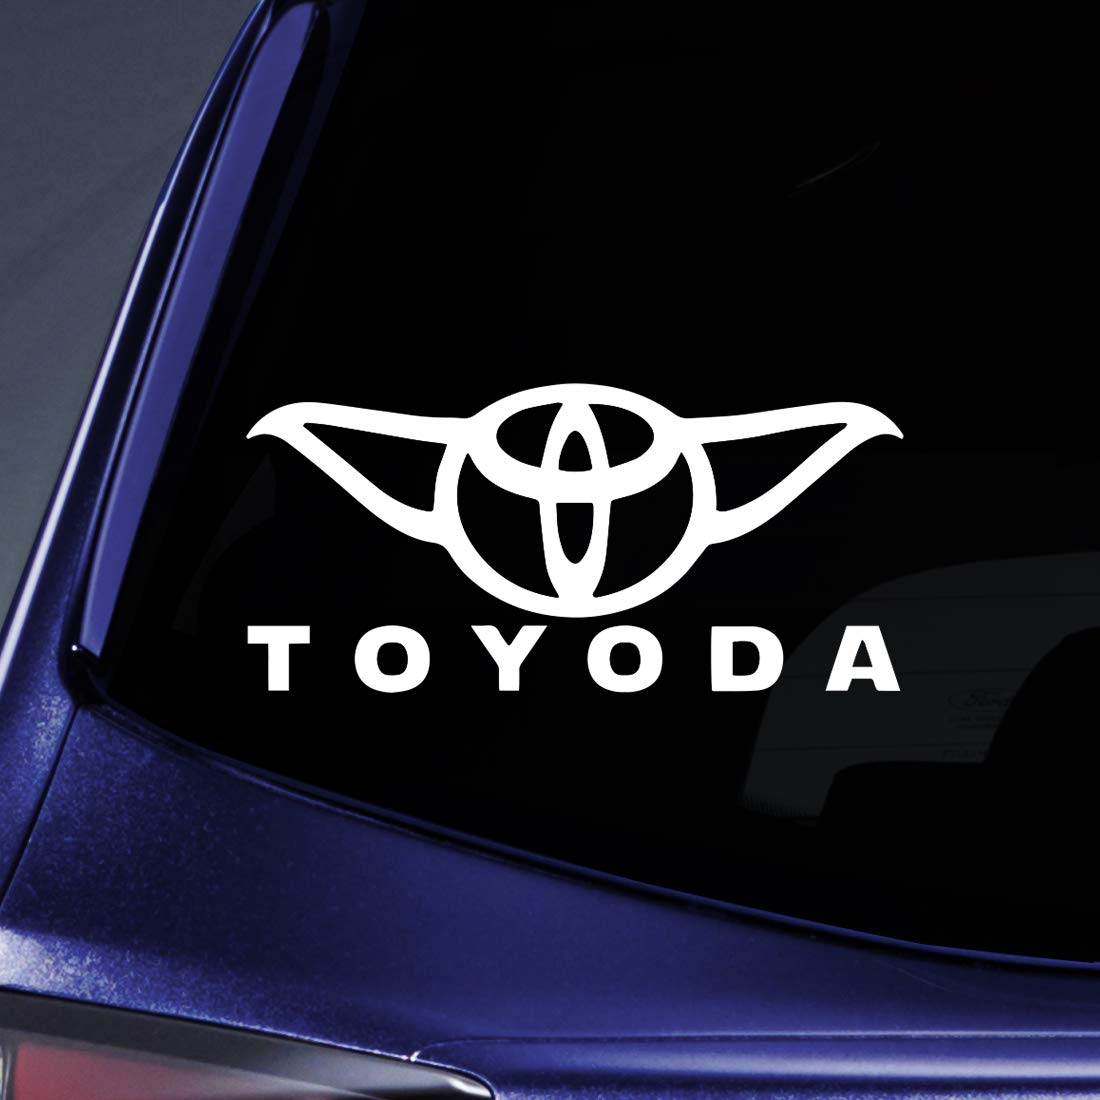 Amazon com bargain max decals toyoda yoda sticker decal notebook car laptop 8 white automotive